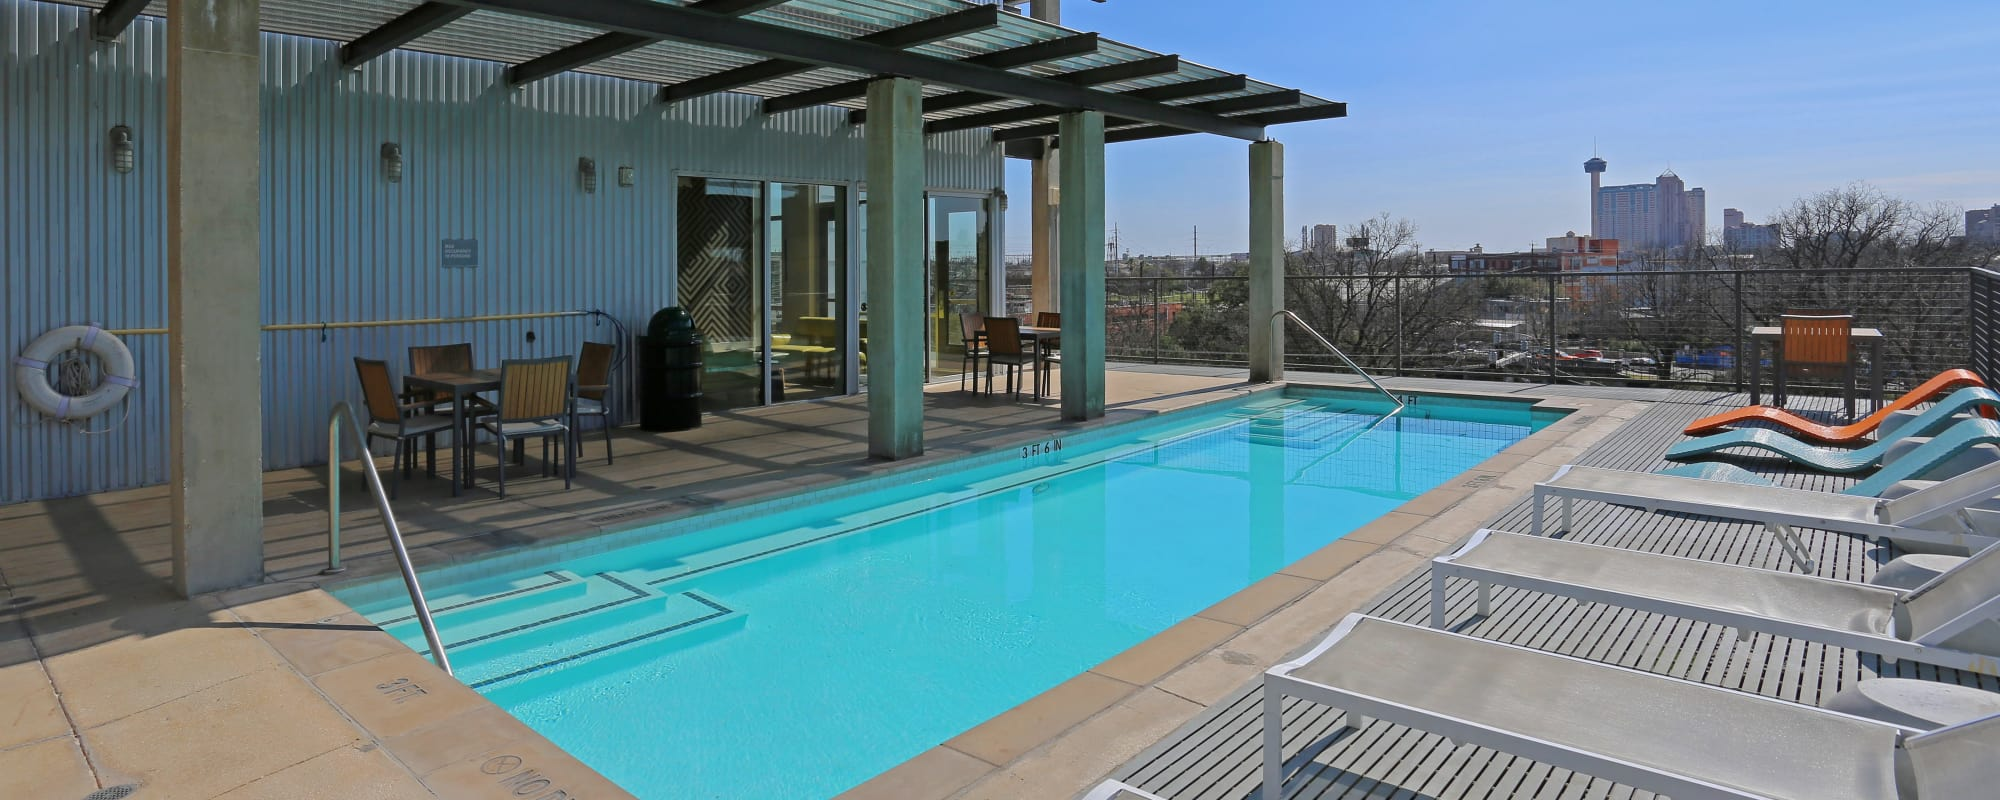 Roof top pool at 1221 Broadway Lofts